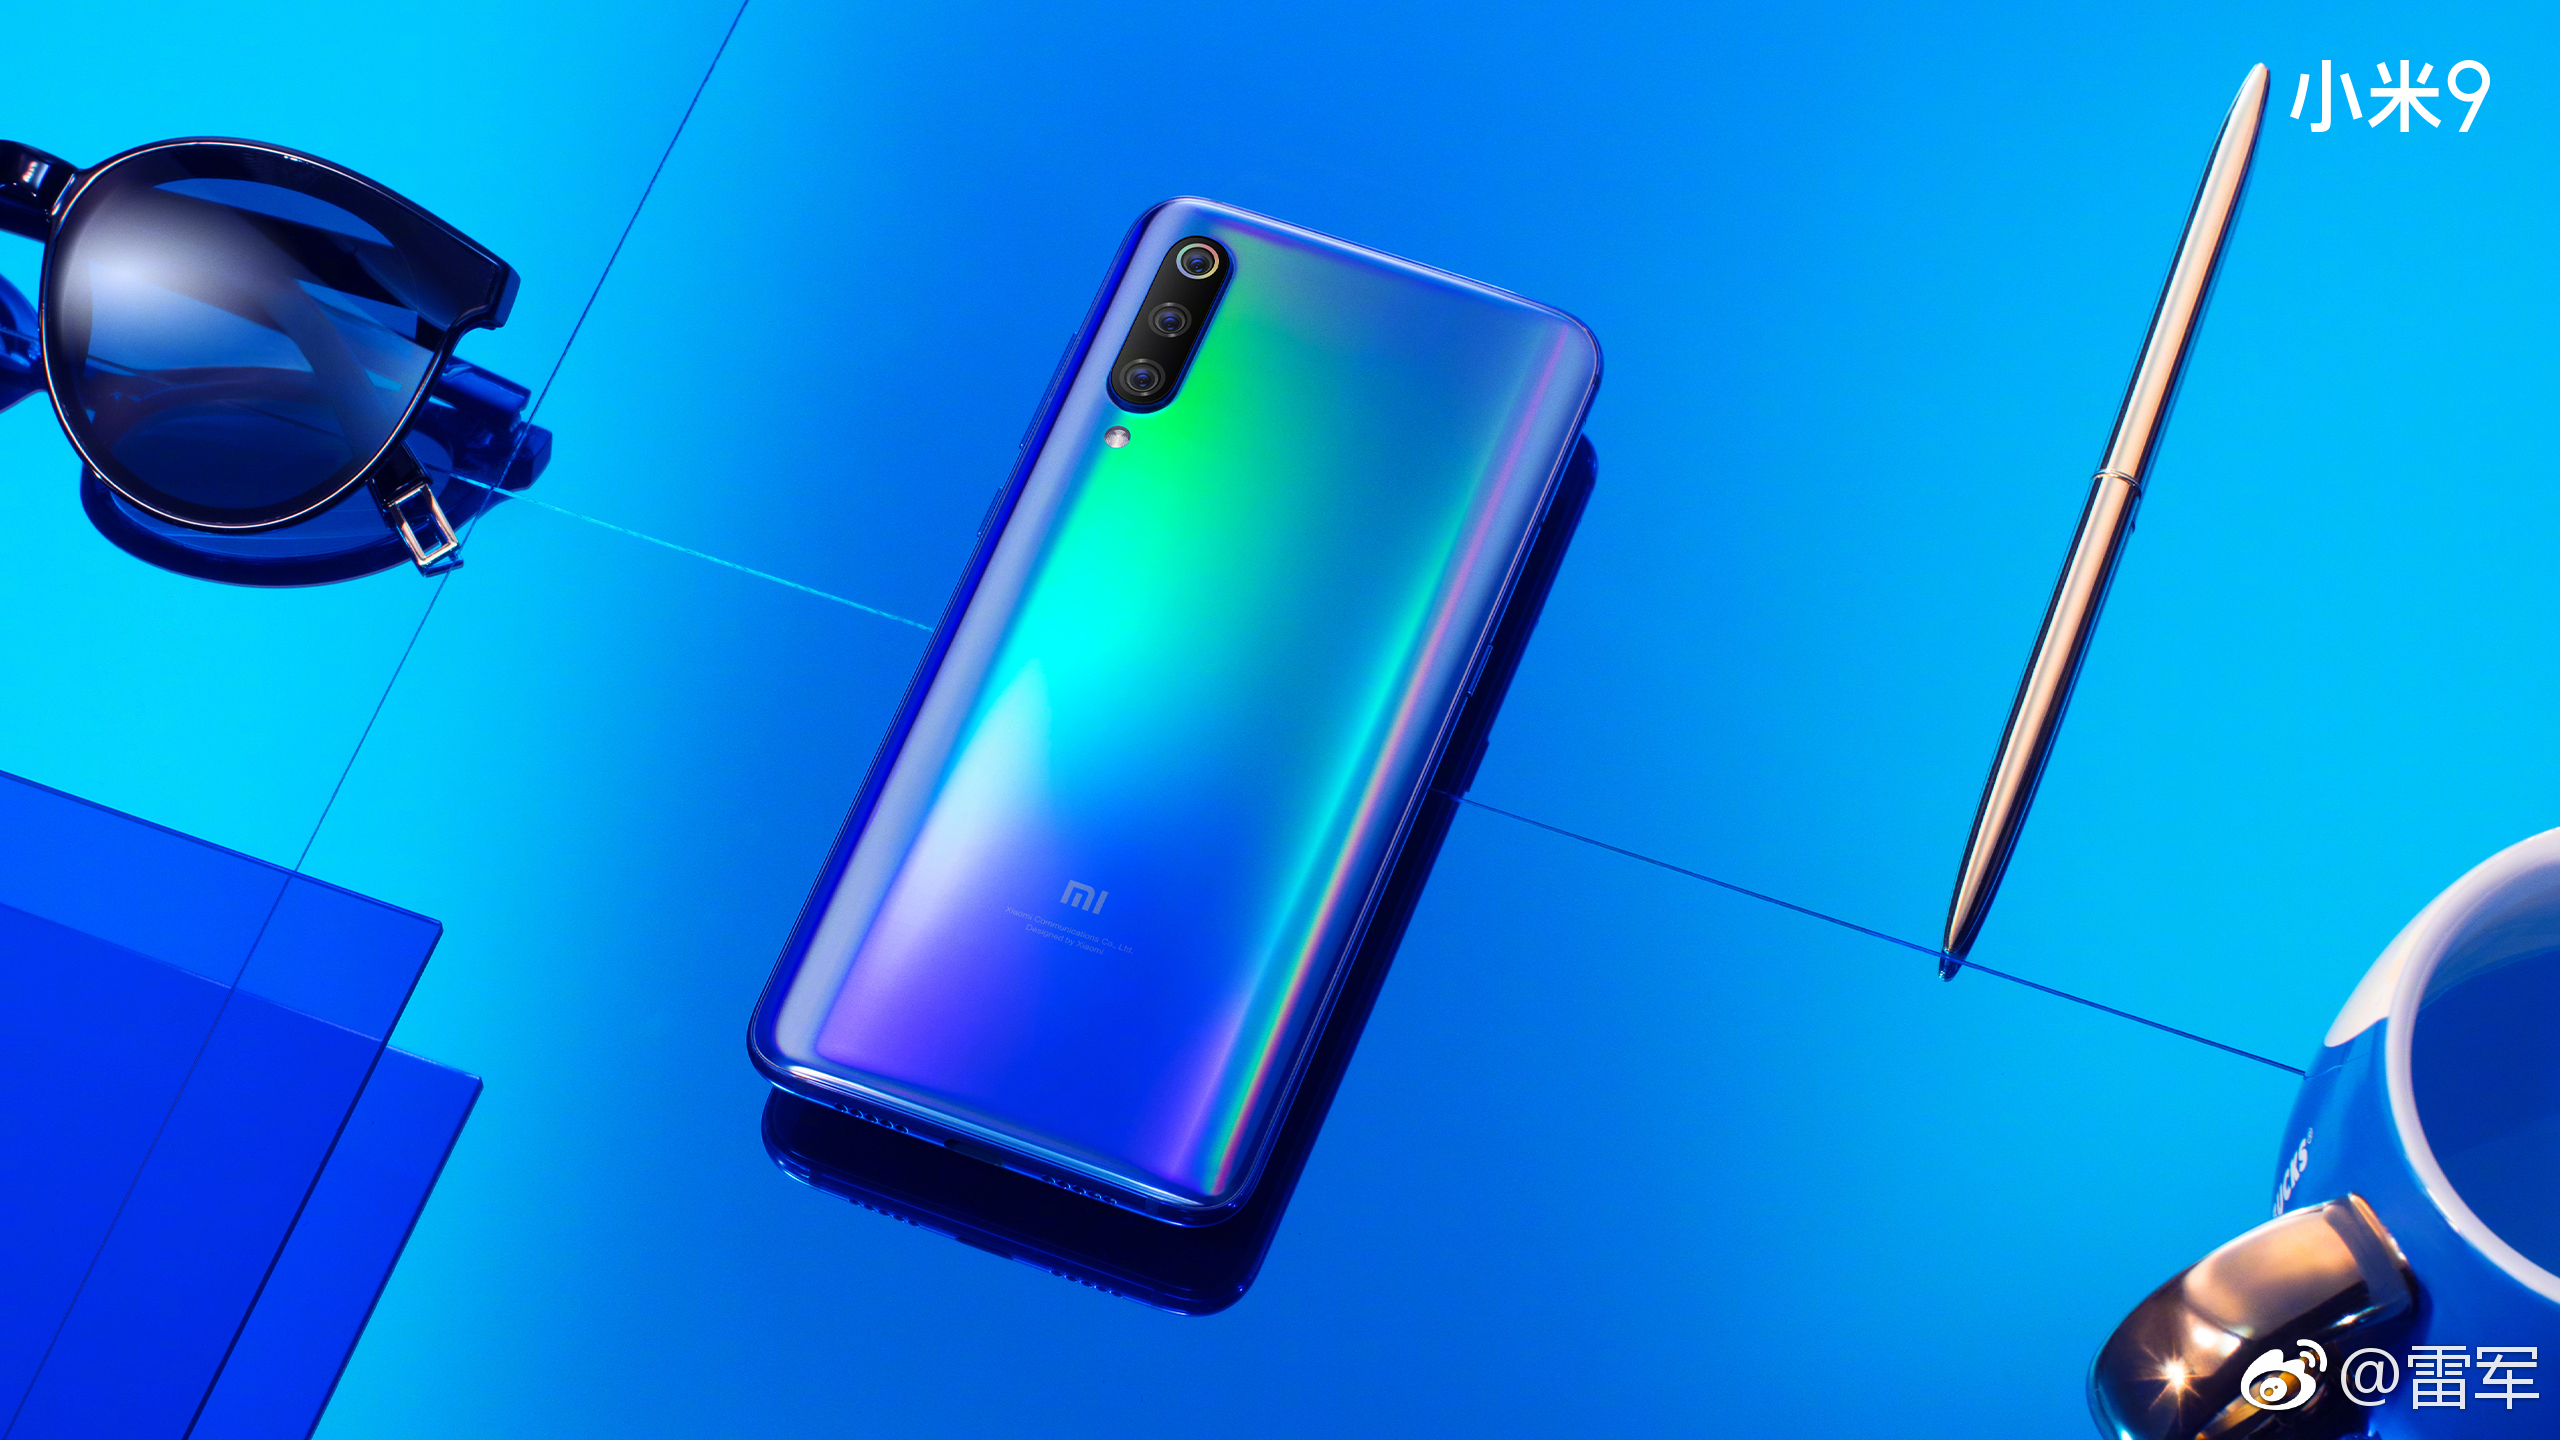 Xiaomi Mi 9 is the most powerful Android smartphone in the world